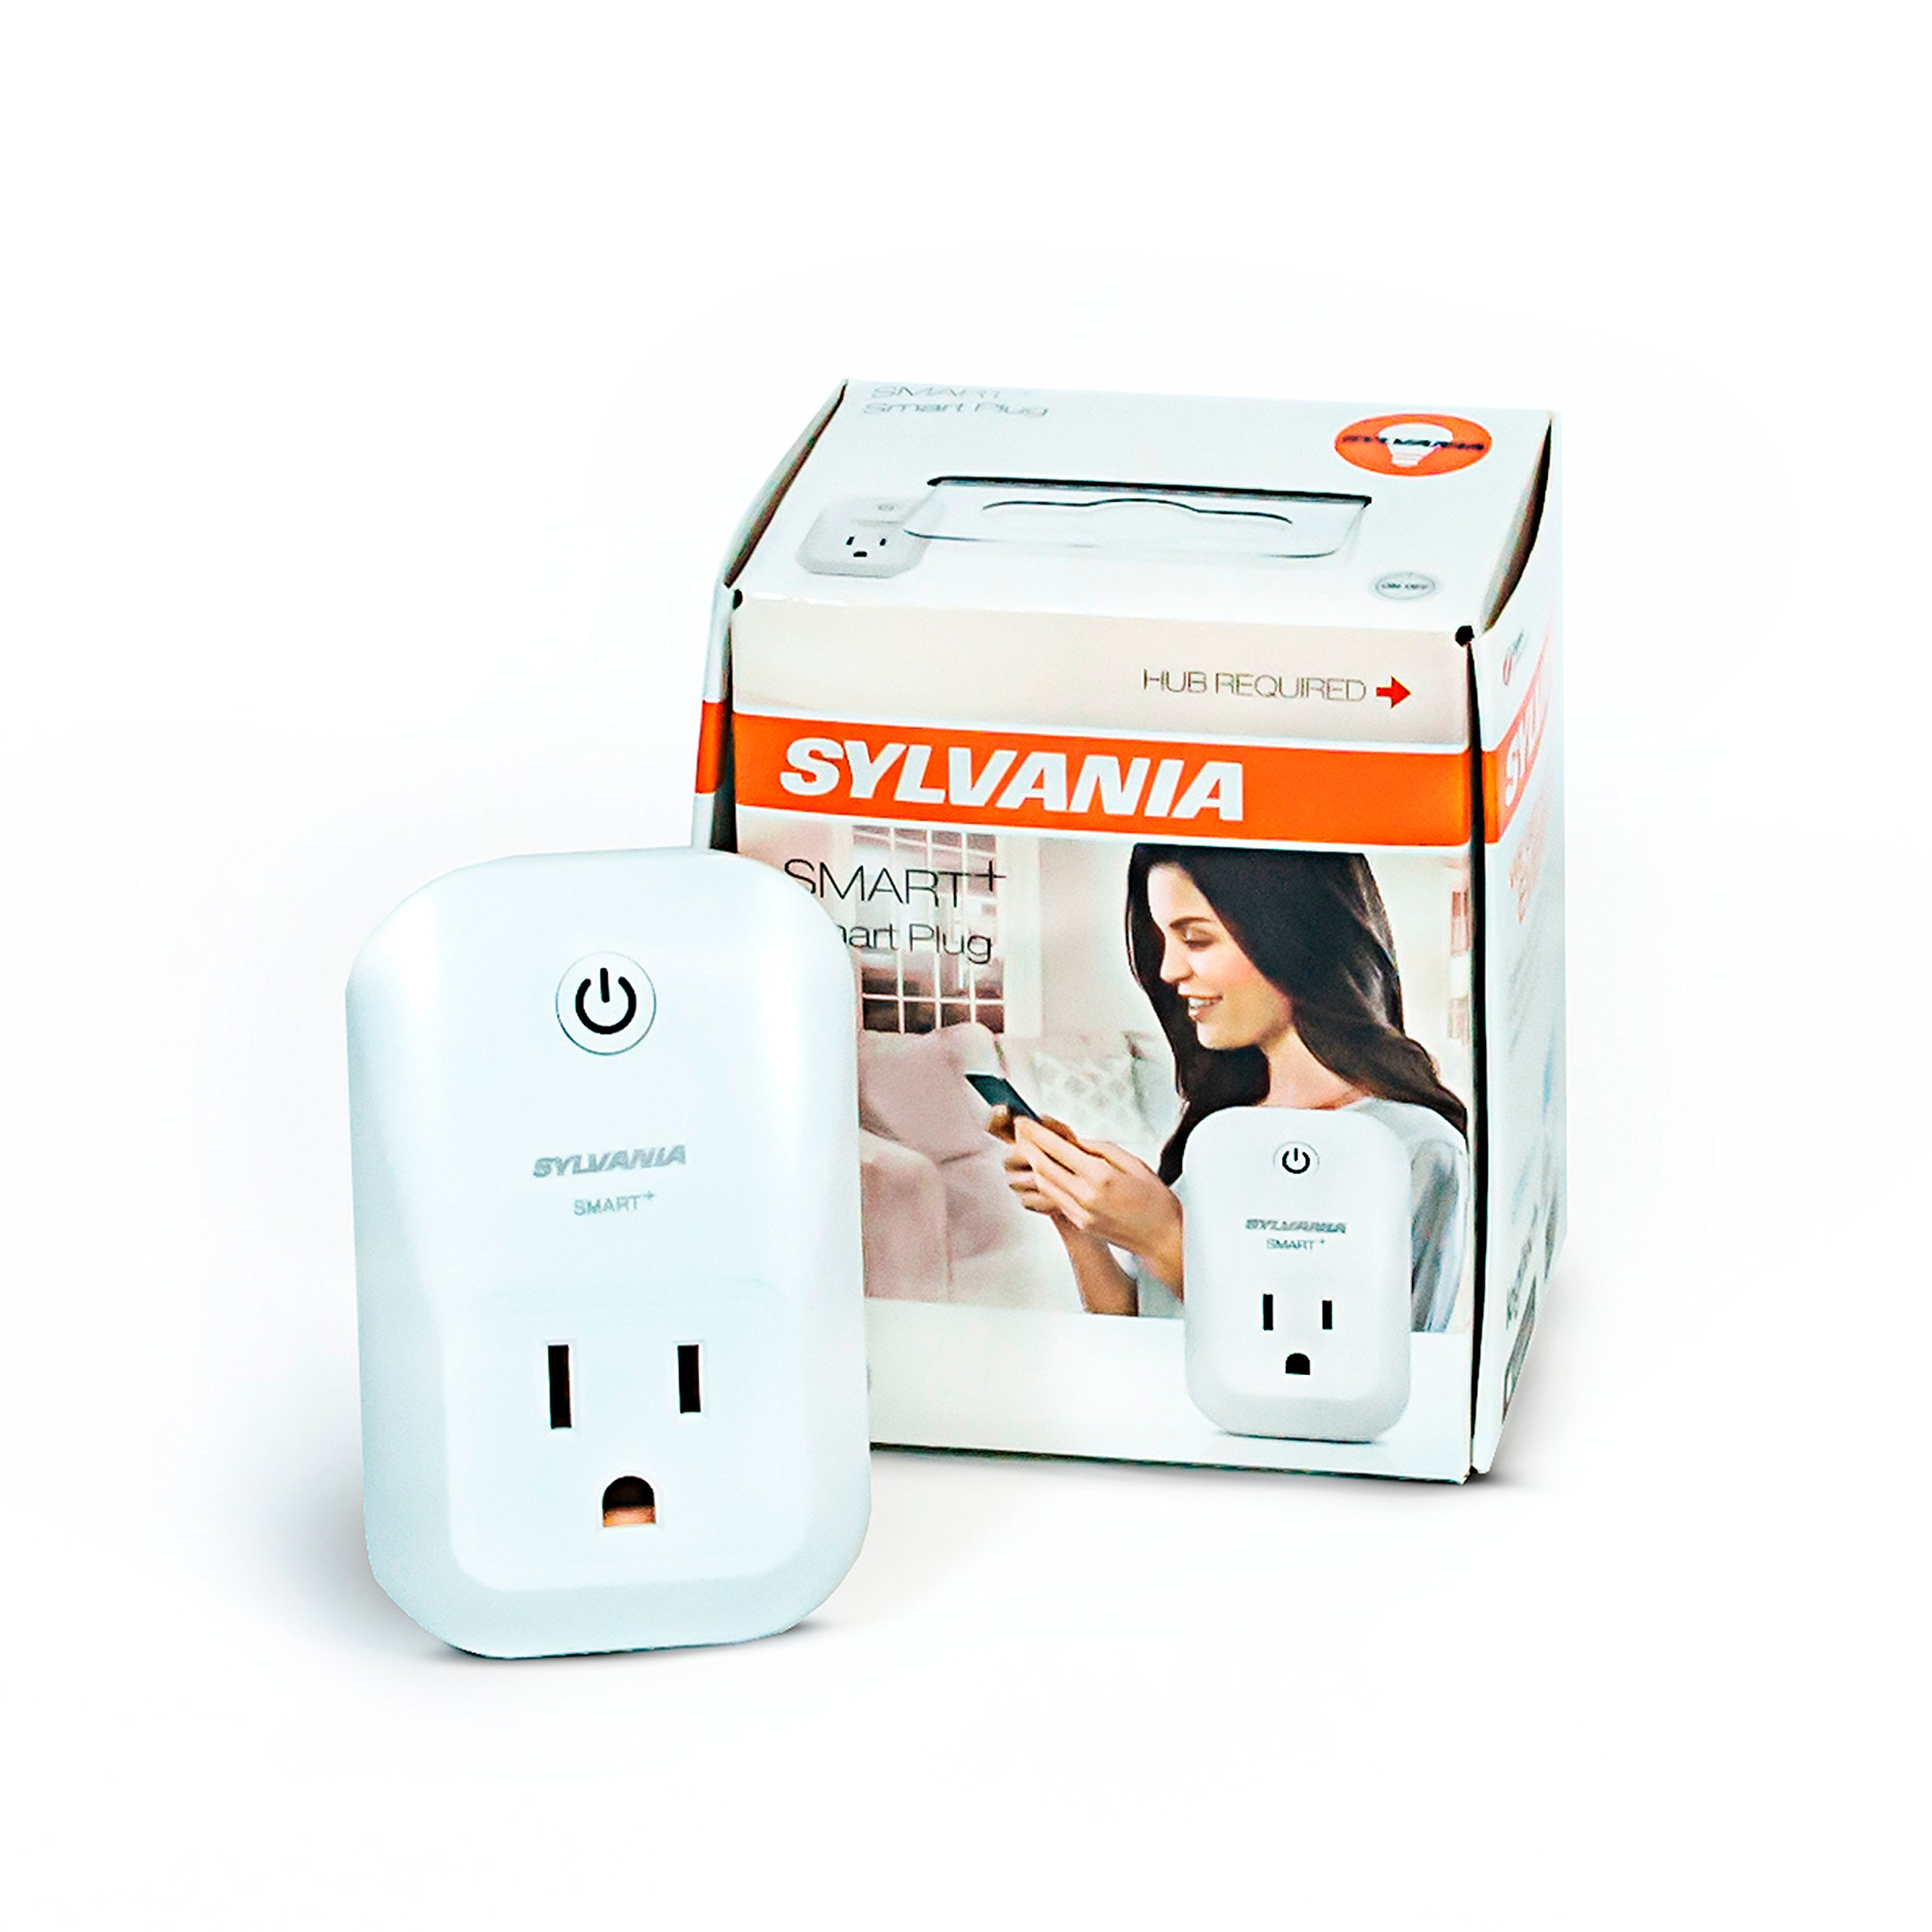 SYLVANIA SMART+ ZigBee Smart Plug, Works with SmartThings and Amazon Echo Plus, Hub Needed, Works with Alexa and Google Assistant